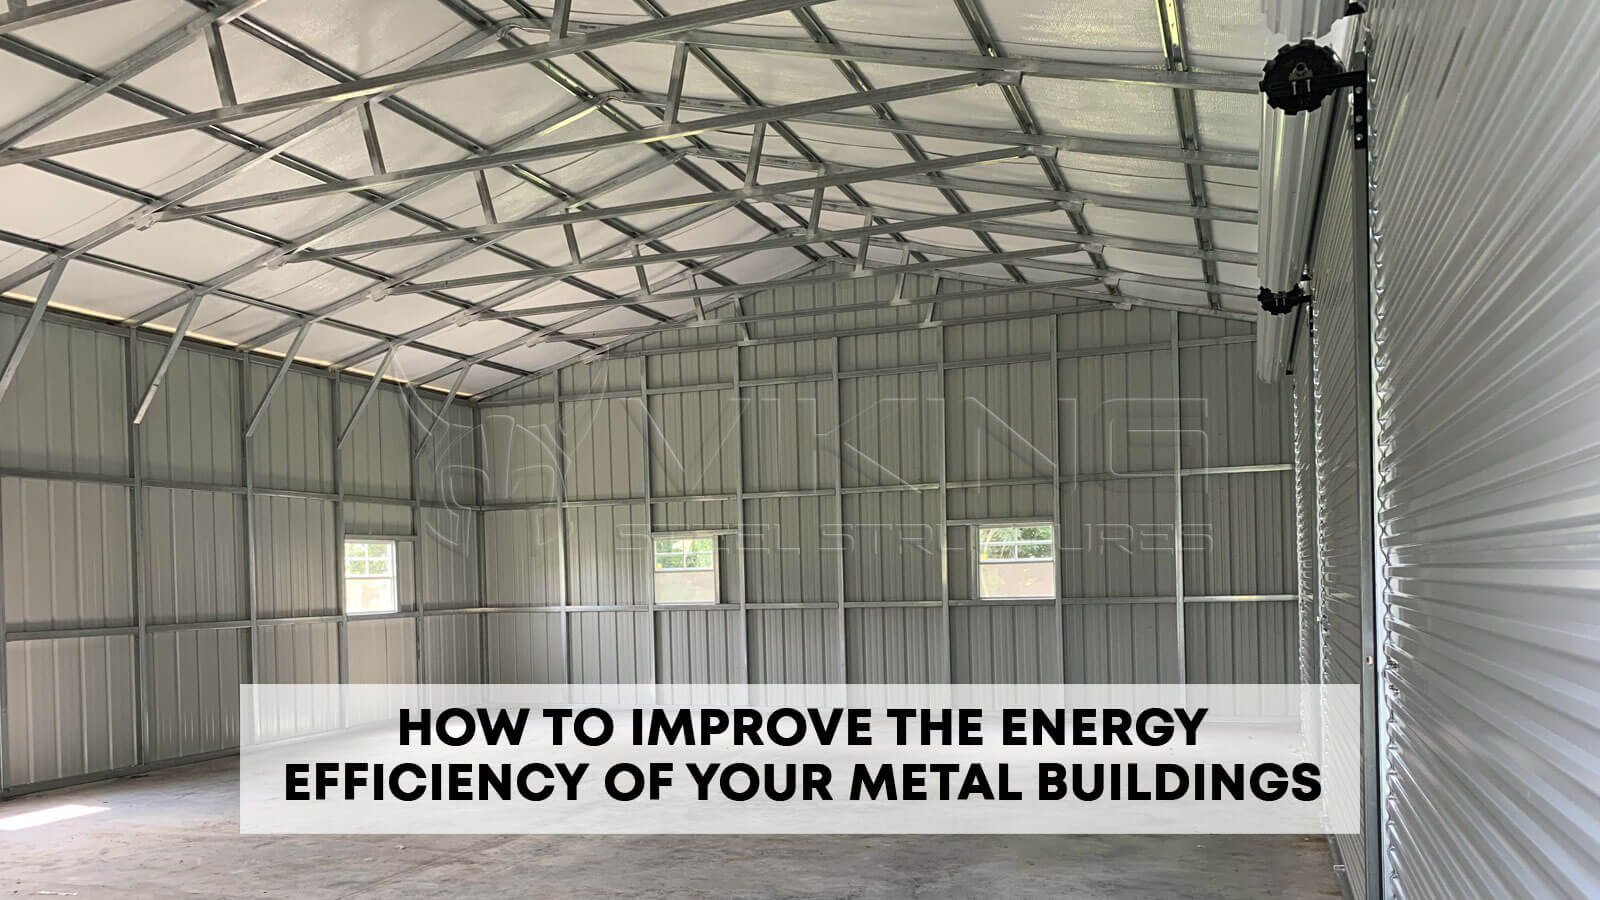 How to Improve the Energy Efficiency of Your Metal Buildings